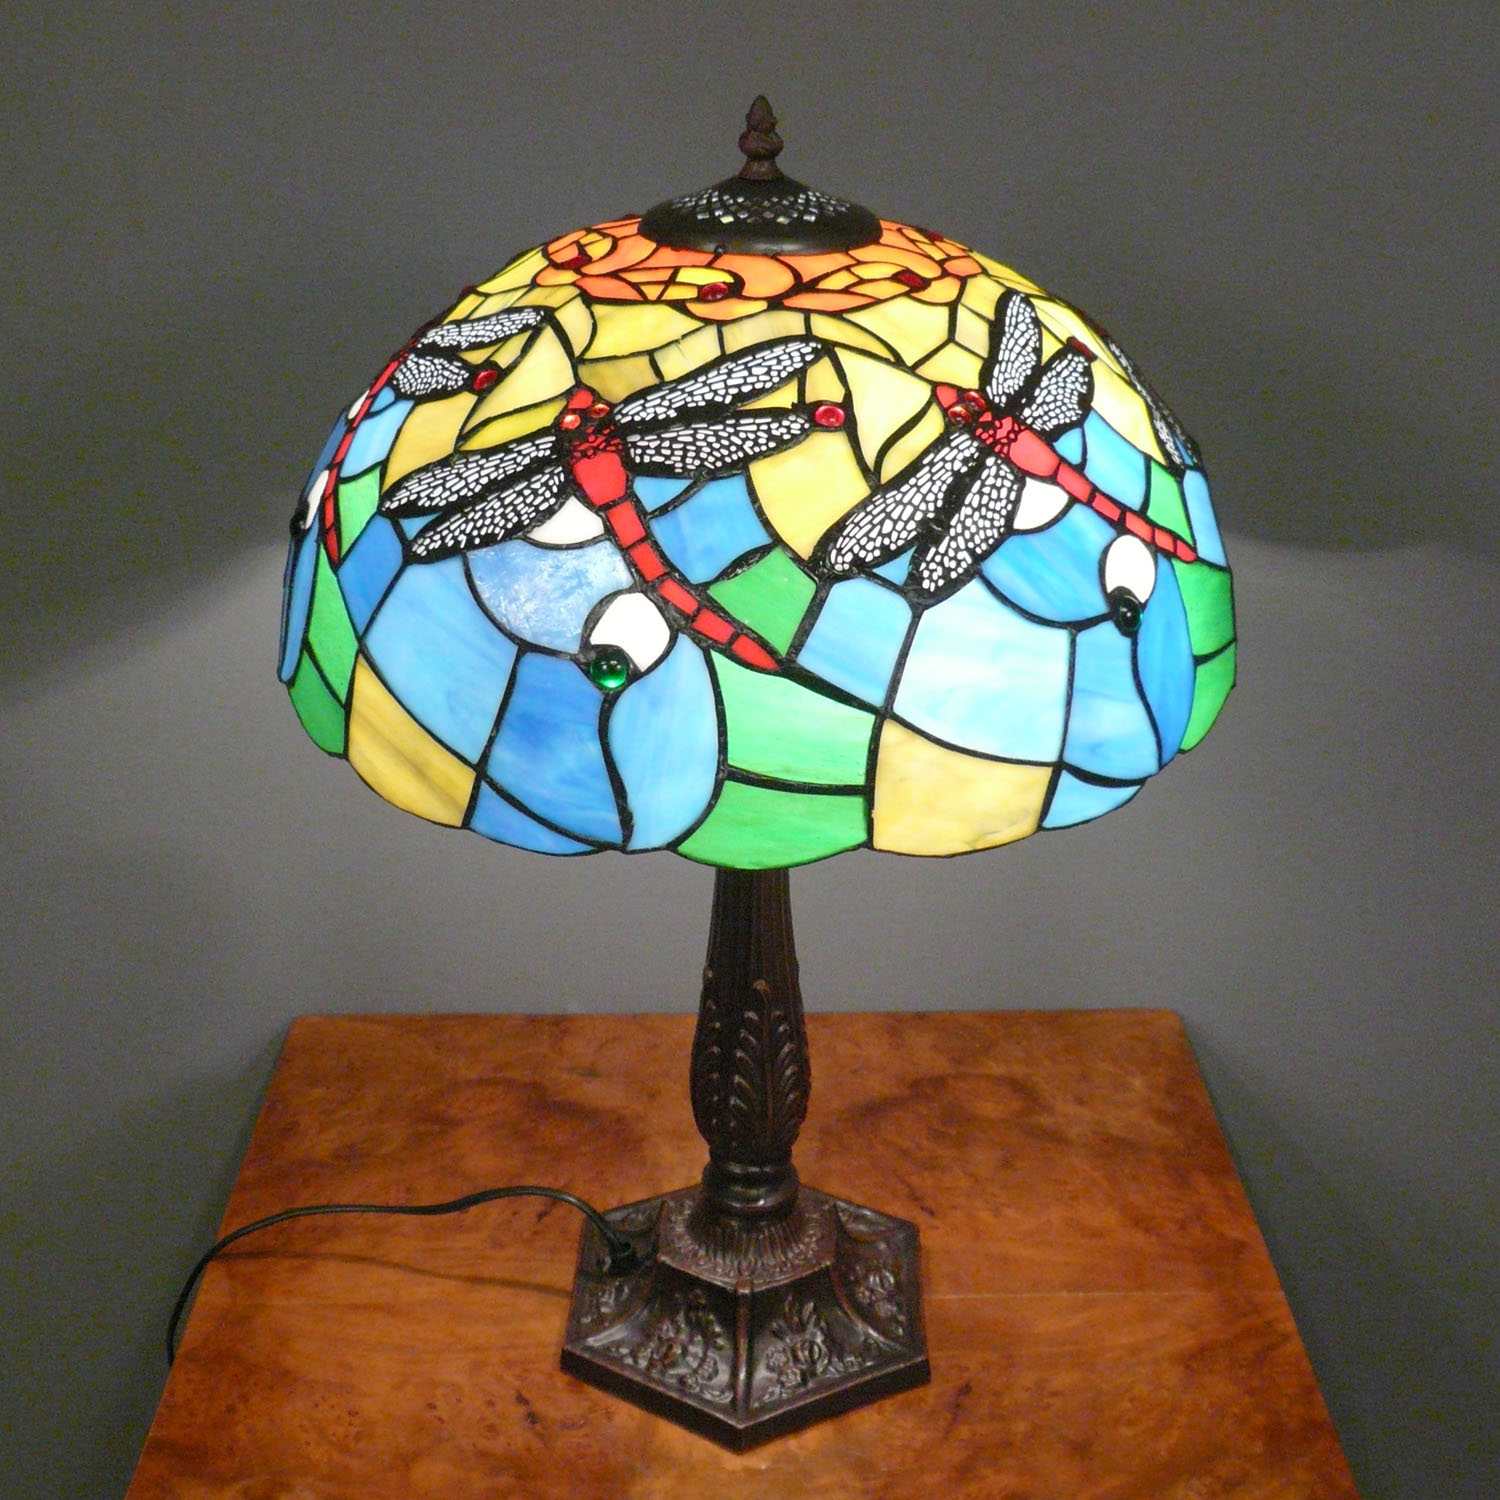 Tiffany Lamp Dragonfly Lamps Floor Chandelier